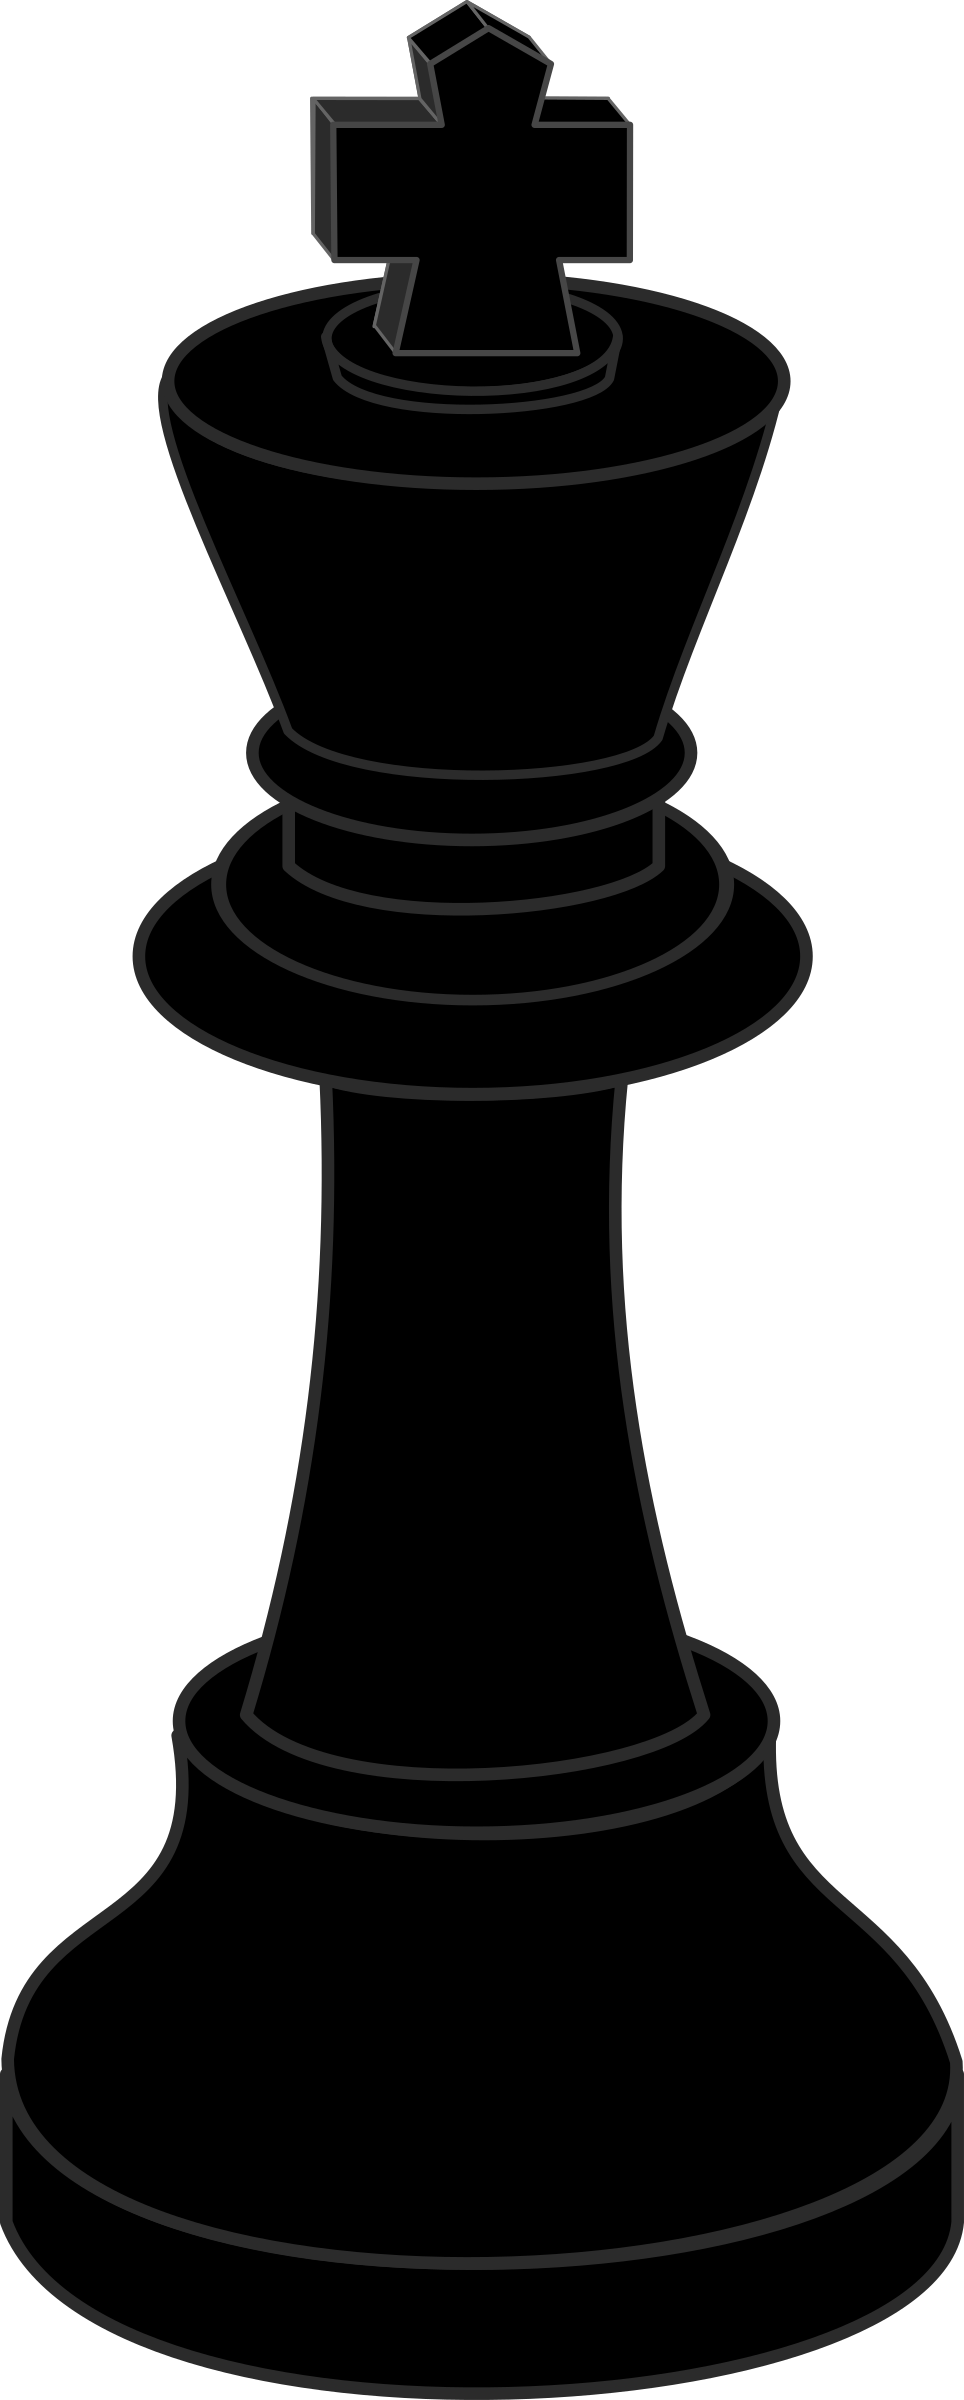 Clipart - Chess piece, black king